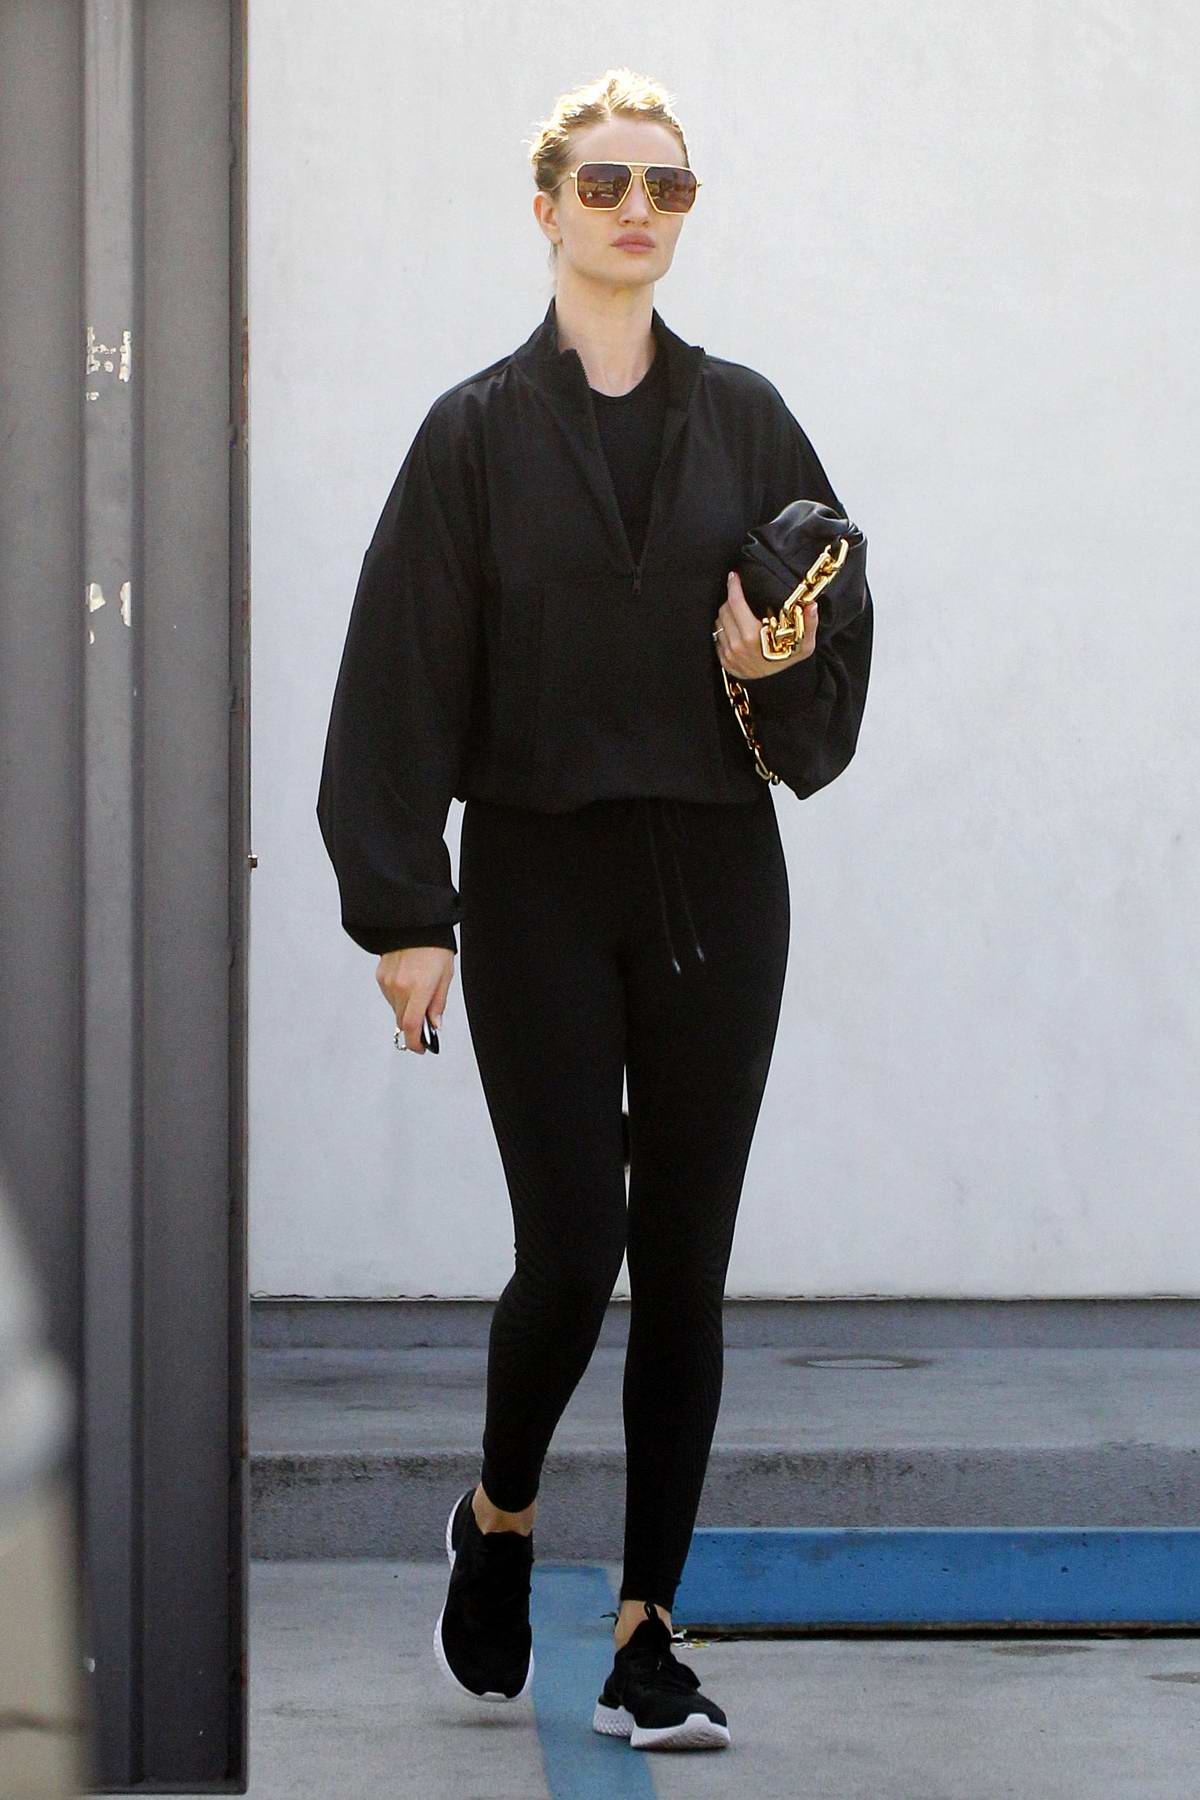 Rosie Huntington-Whiteley dons all-black athleisure as she leaves the gym after workout in Los Angeles